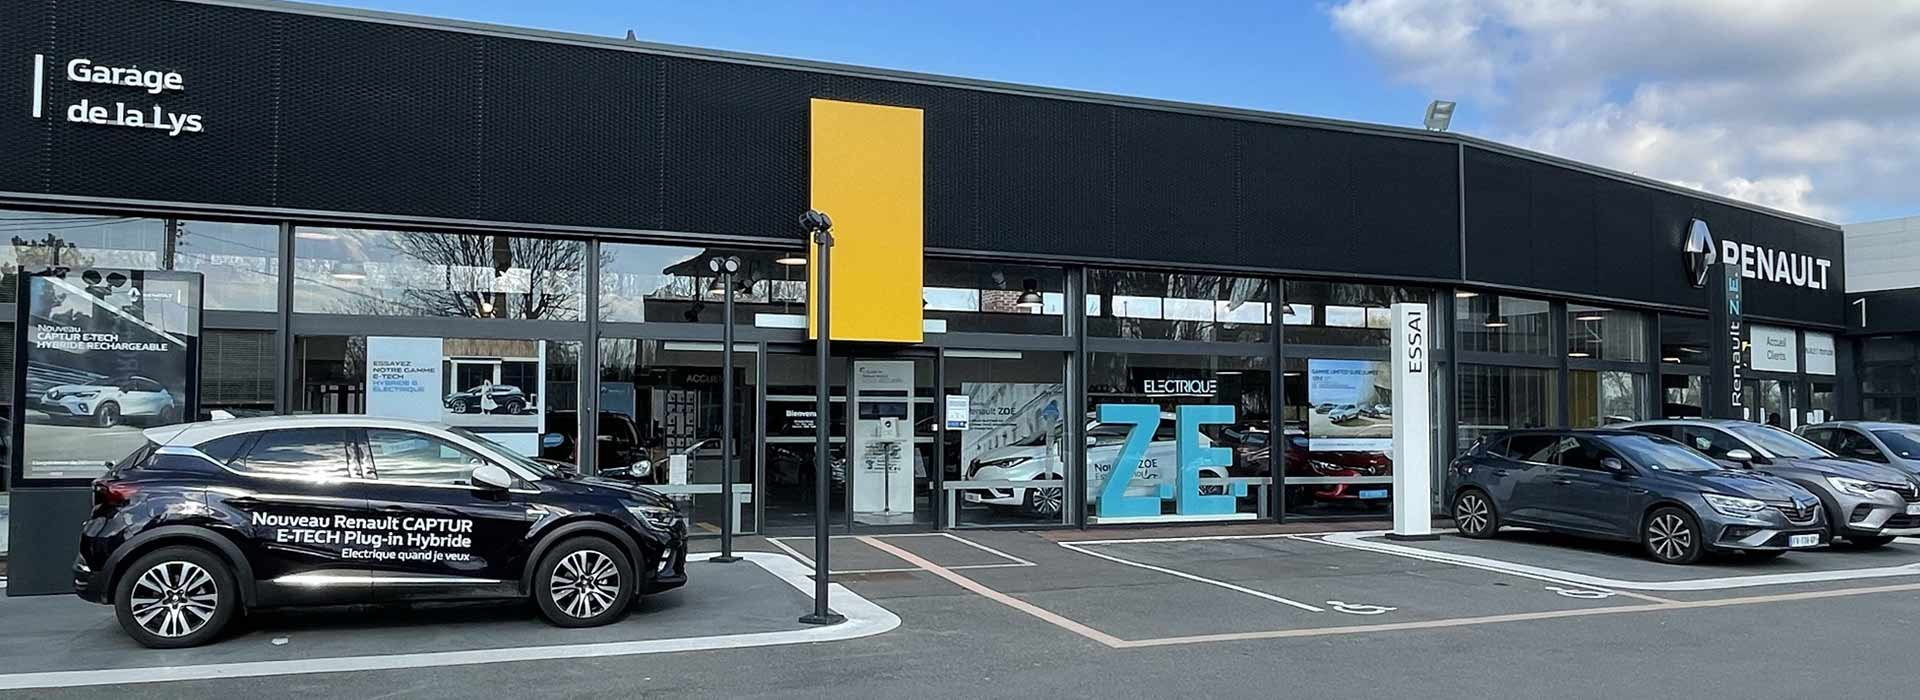 Renault nieppe concessionnaire garage nord 59 for Garage renault beaurepaire